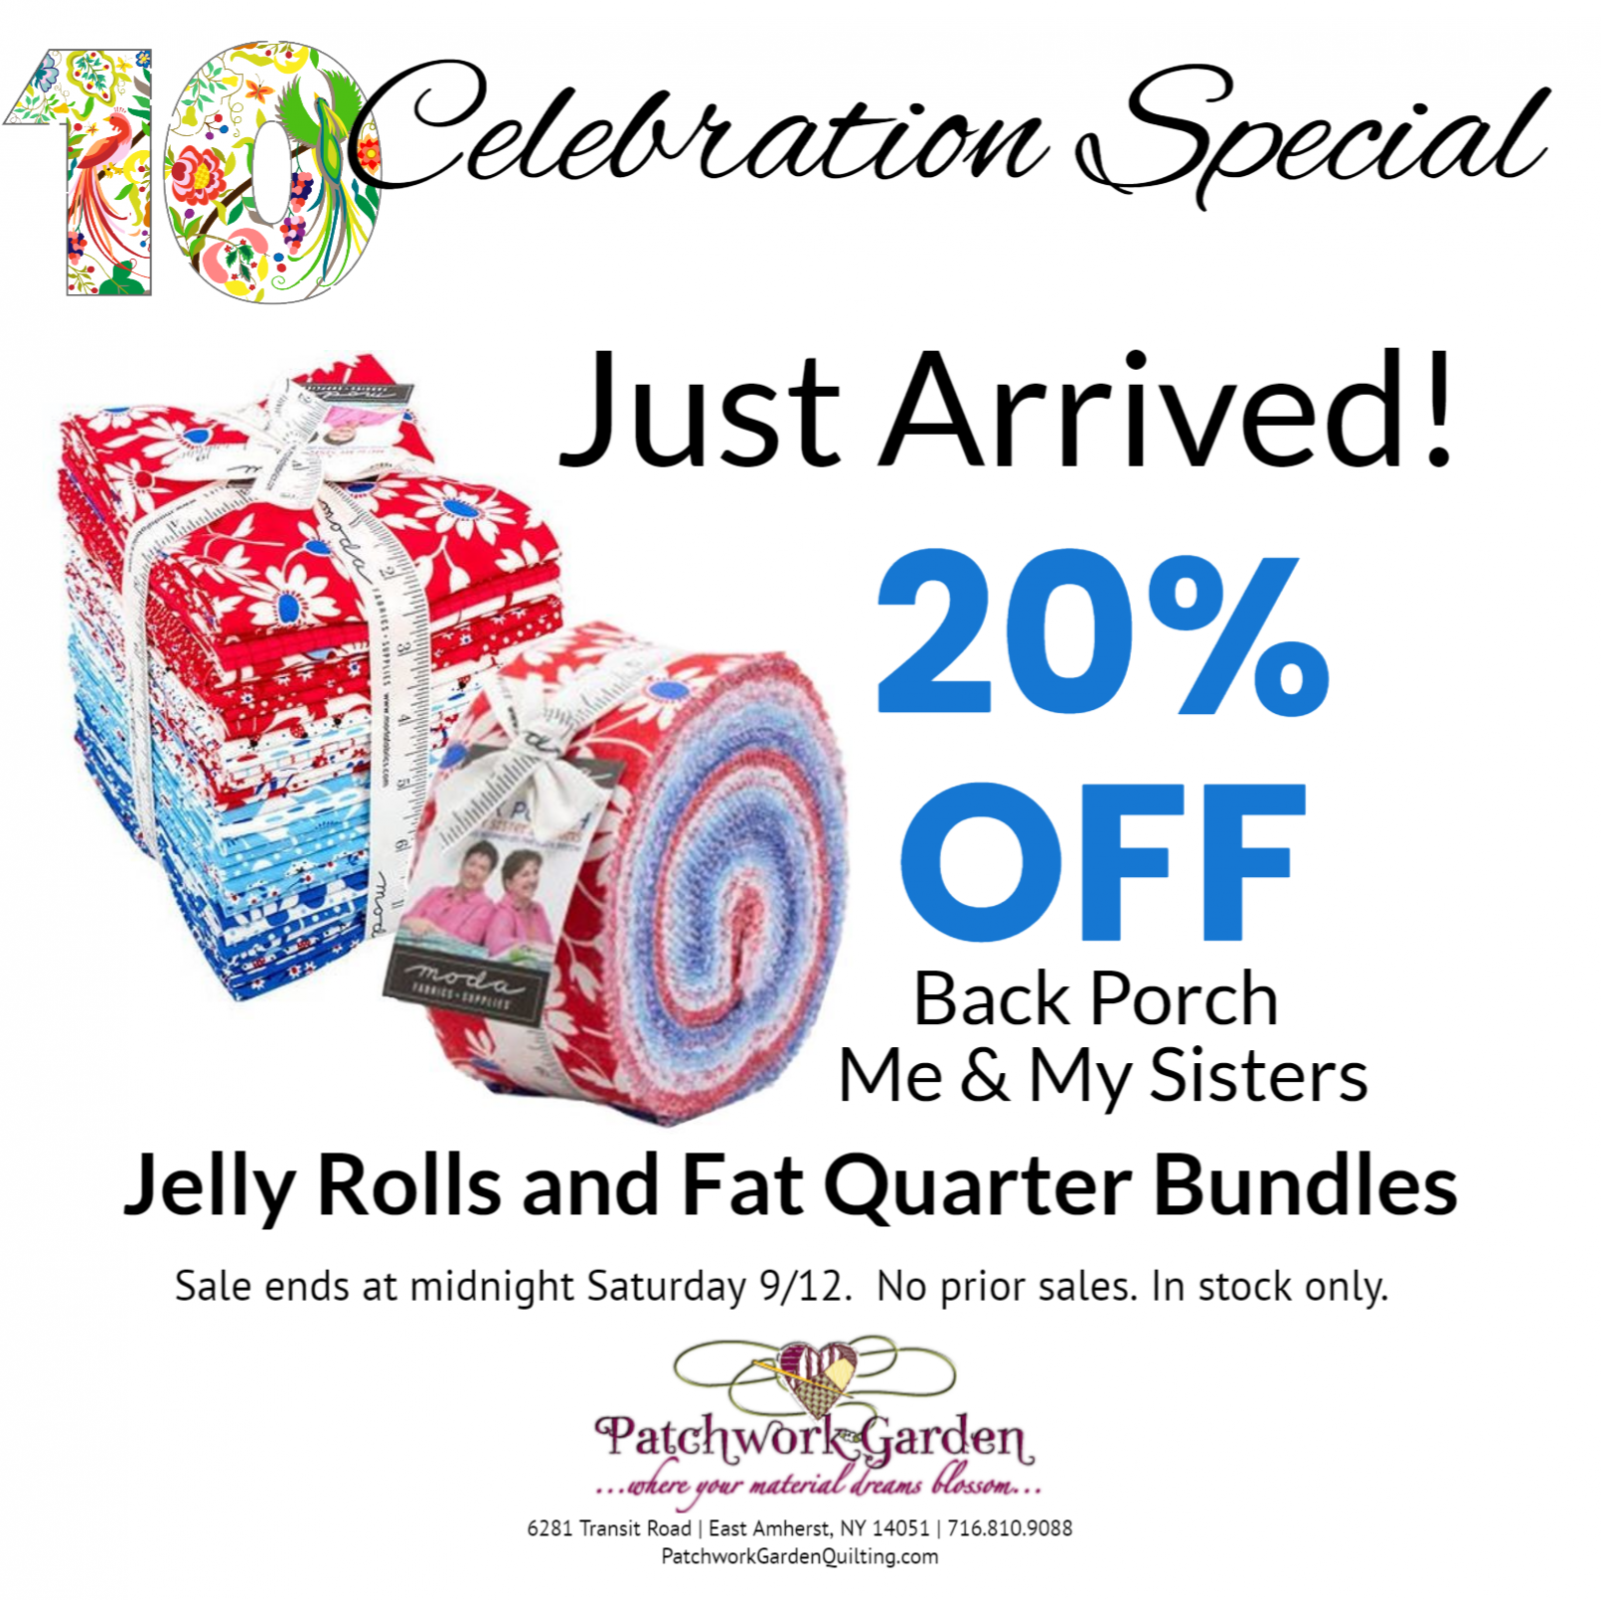 10th Celebration Savings.  Just Arrived 20% off Back Porch Fat Quarters and Jelly Rolls.  In Stock Only.  Sale ends midnight September 12.  No prior sales.